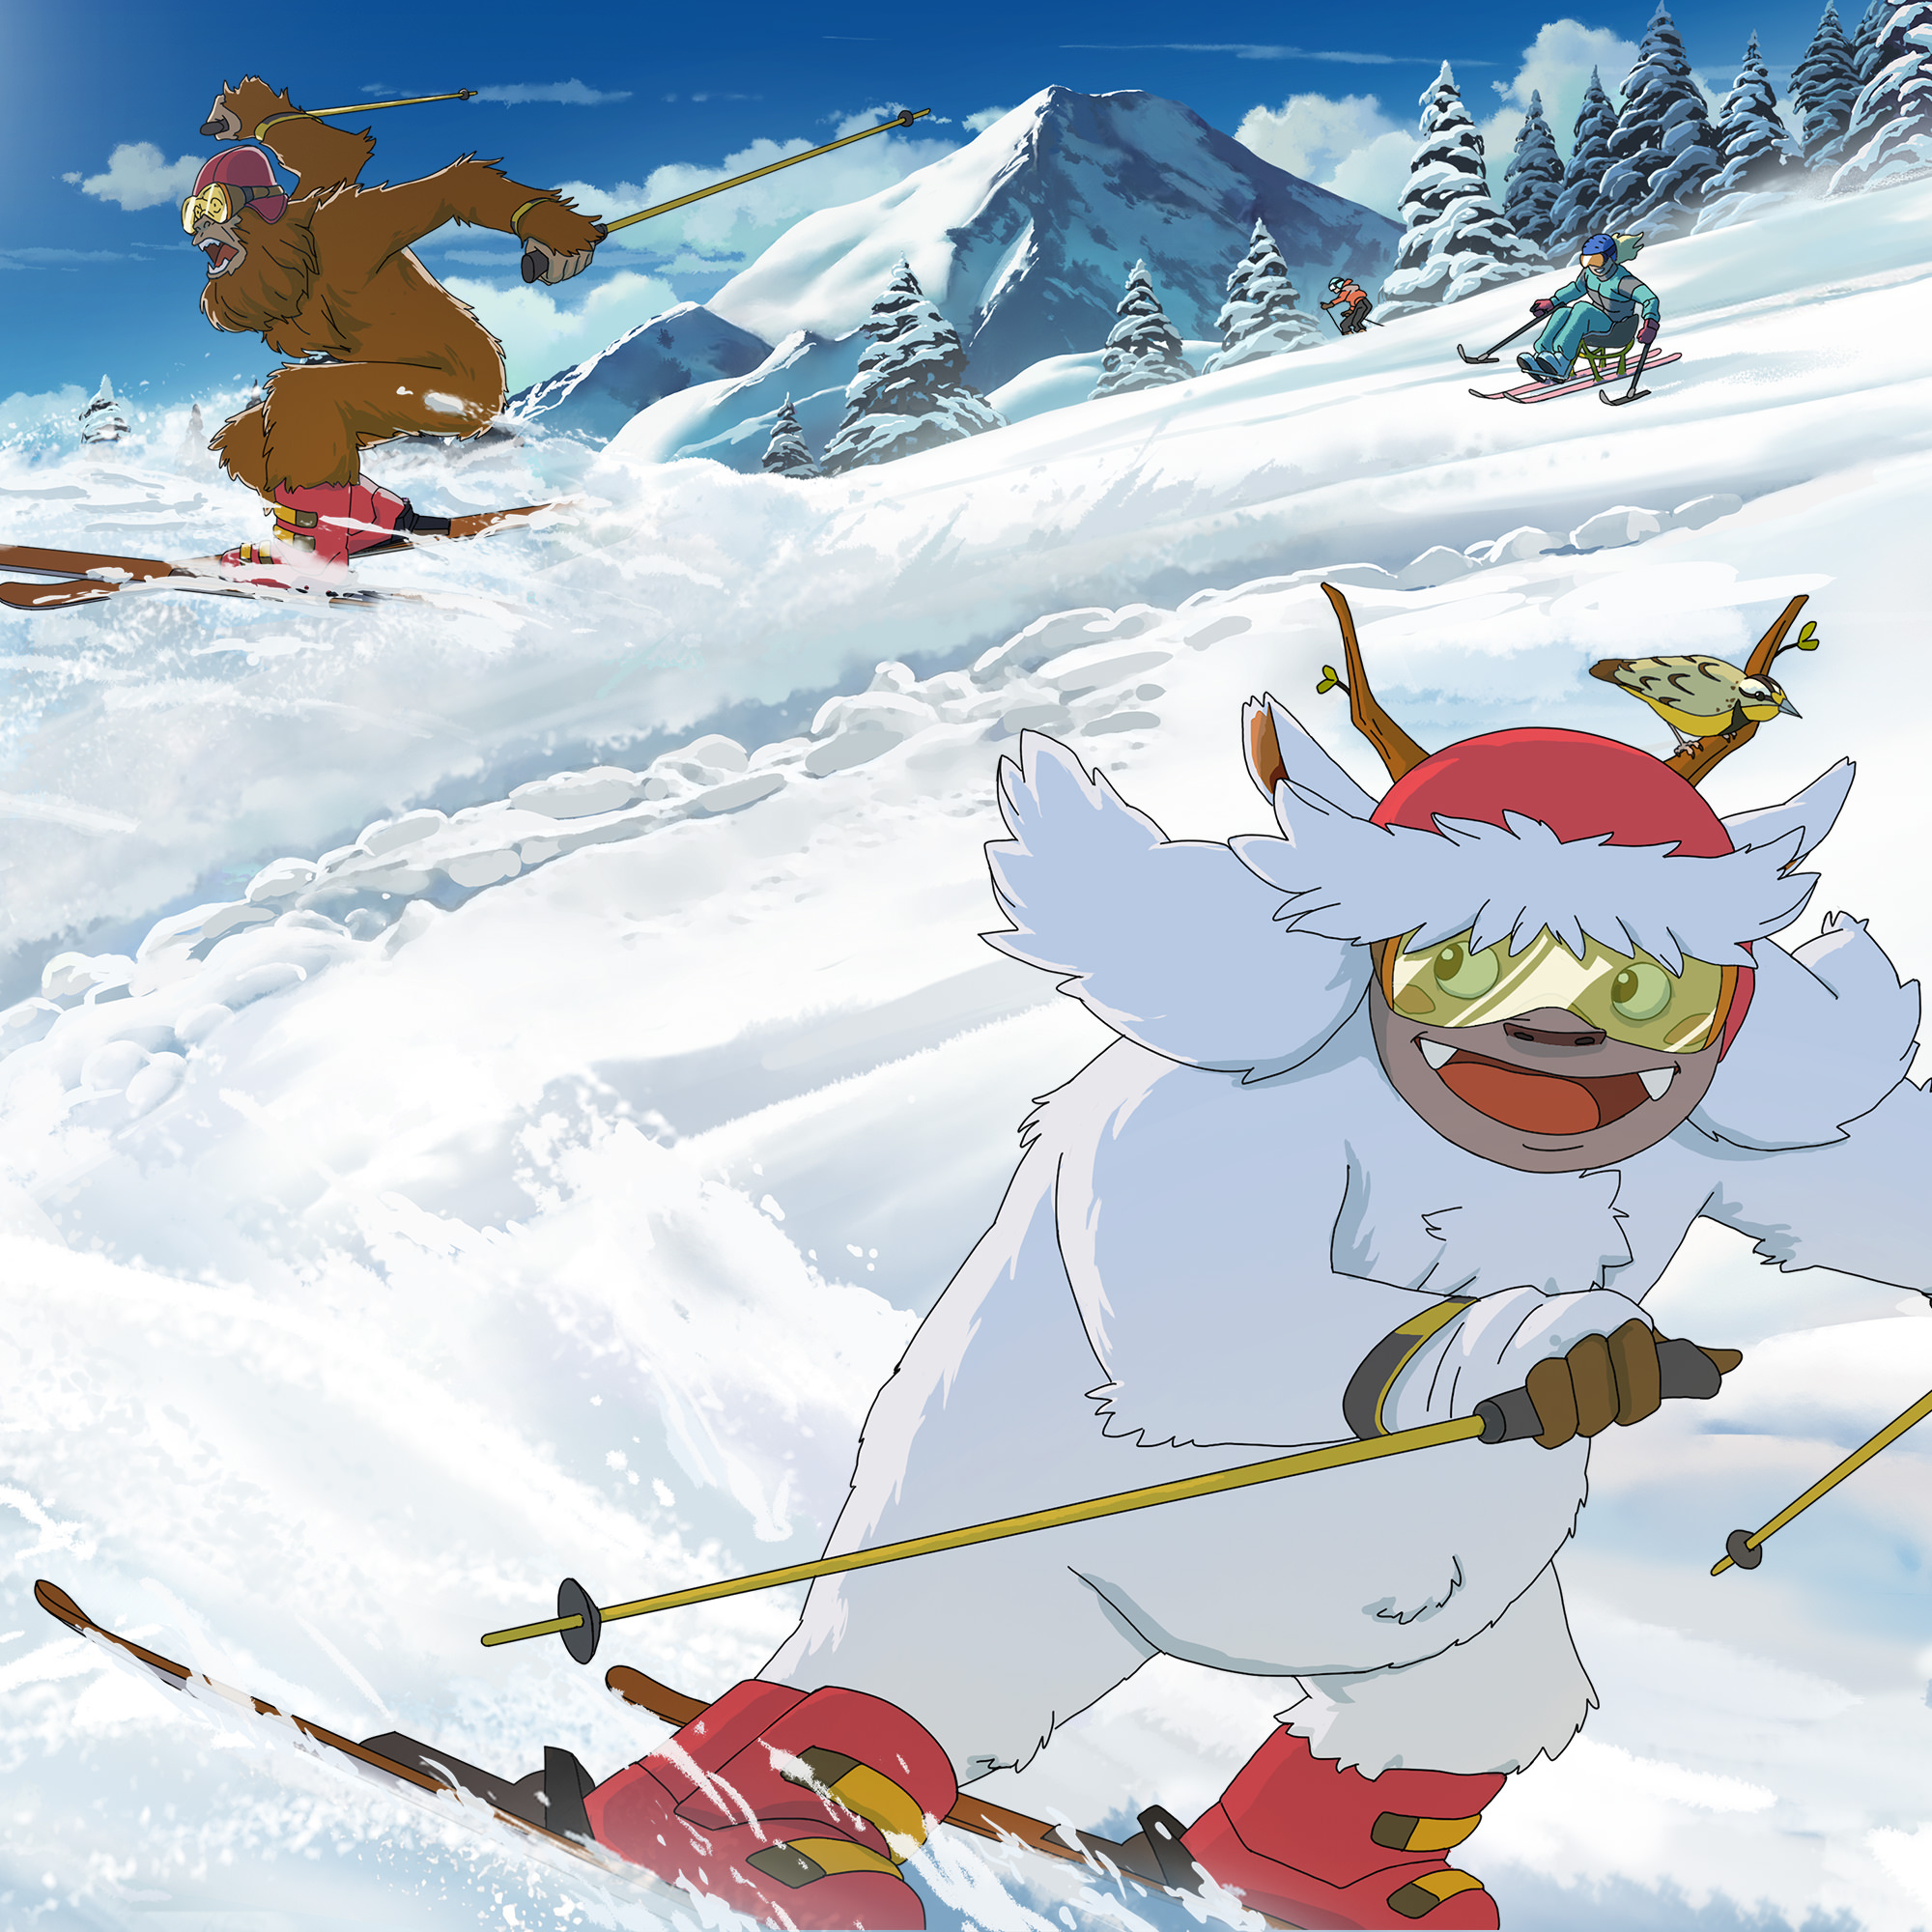 Illustration of Yeti & Squatch skiing down Mt. Bachelor with an adaptive skier right behind them.